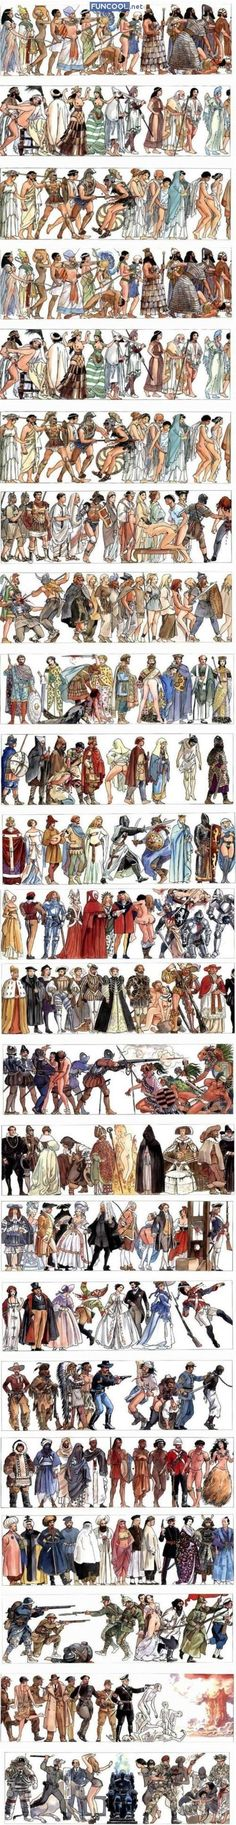 The history of the world as seen by the artist Milo Manara